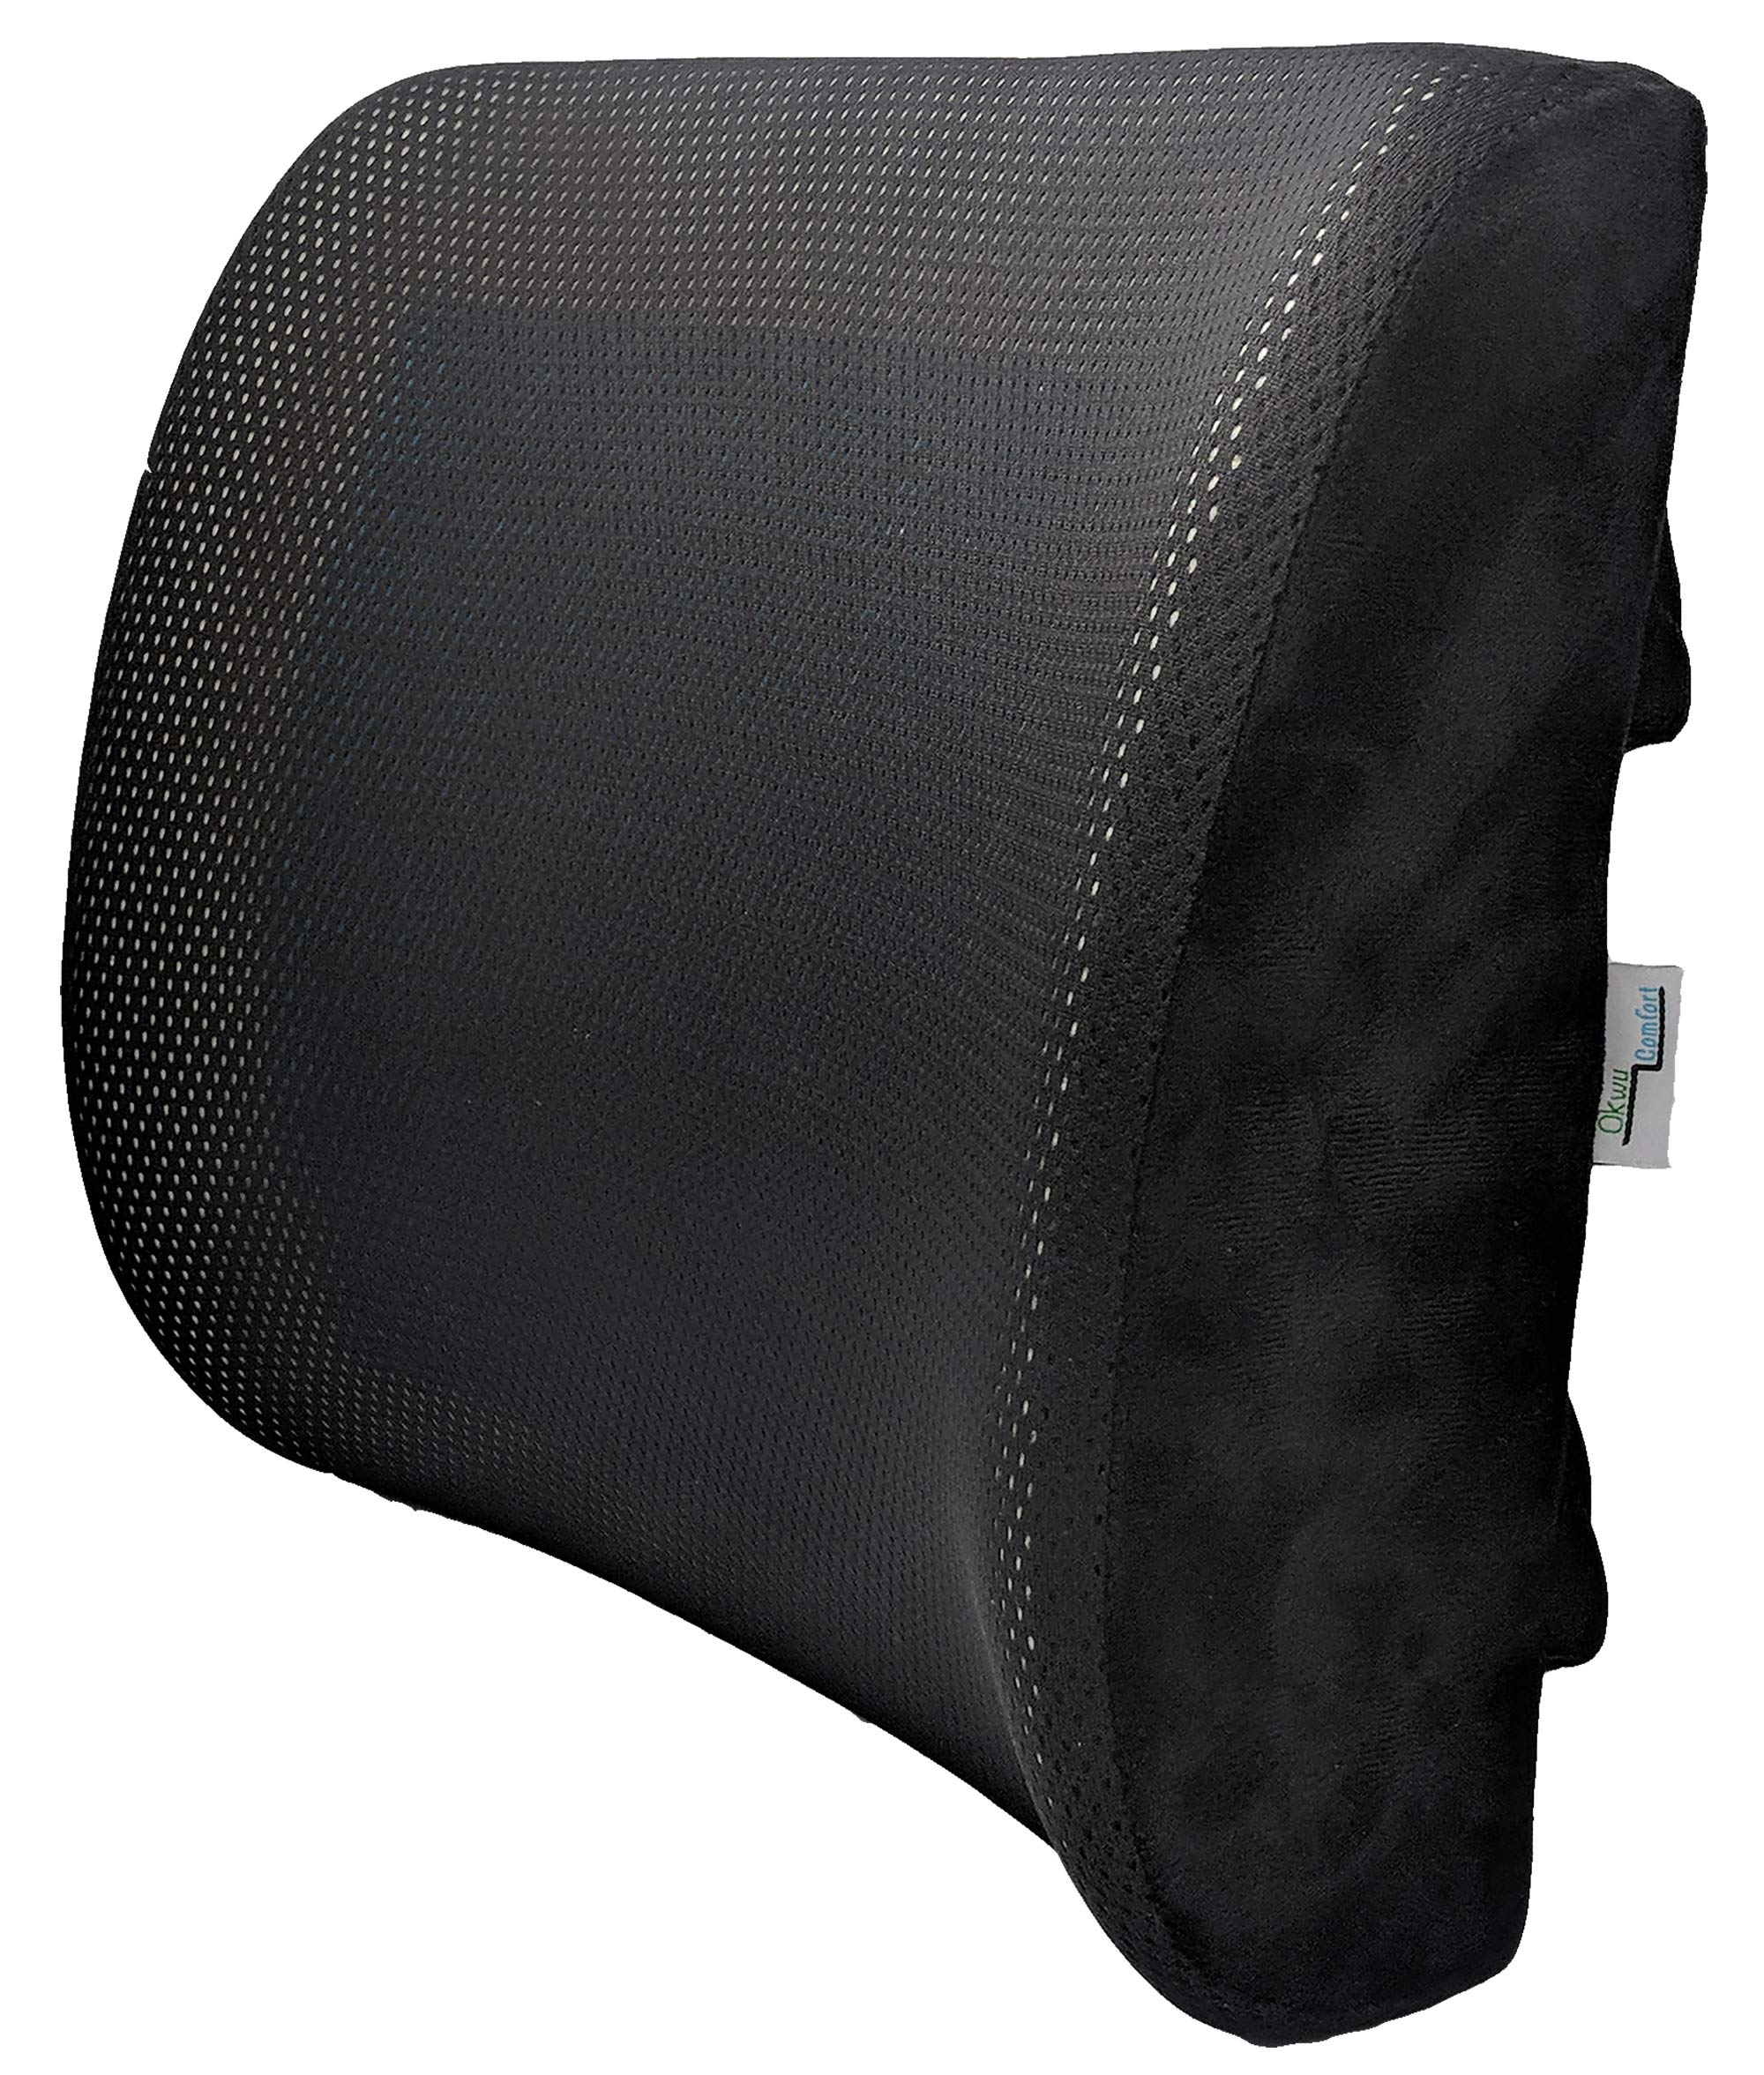 Gel PAD Lumbar Back Support Pillow Cushion for Lower Pain Relief for Cars Wheelchair Chair Office Sitting (Black mesh Cover)